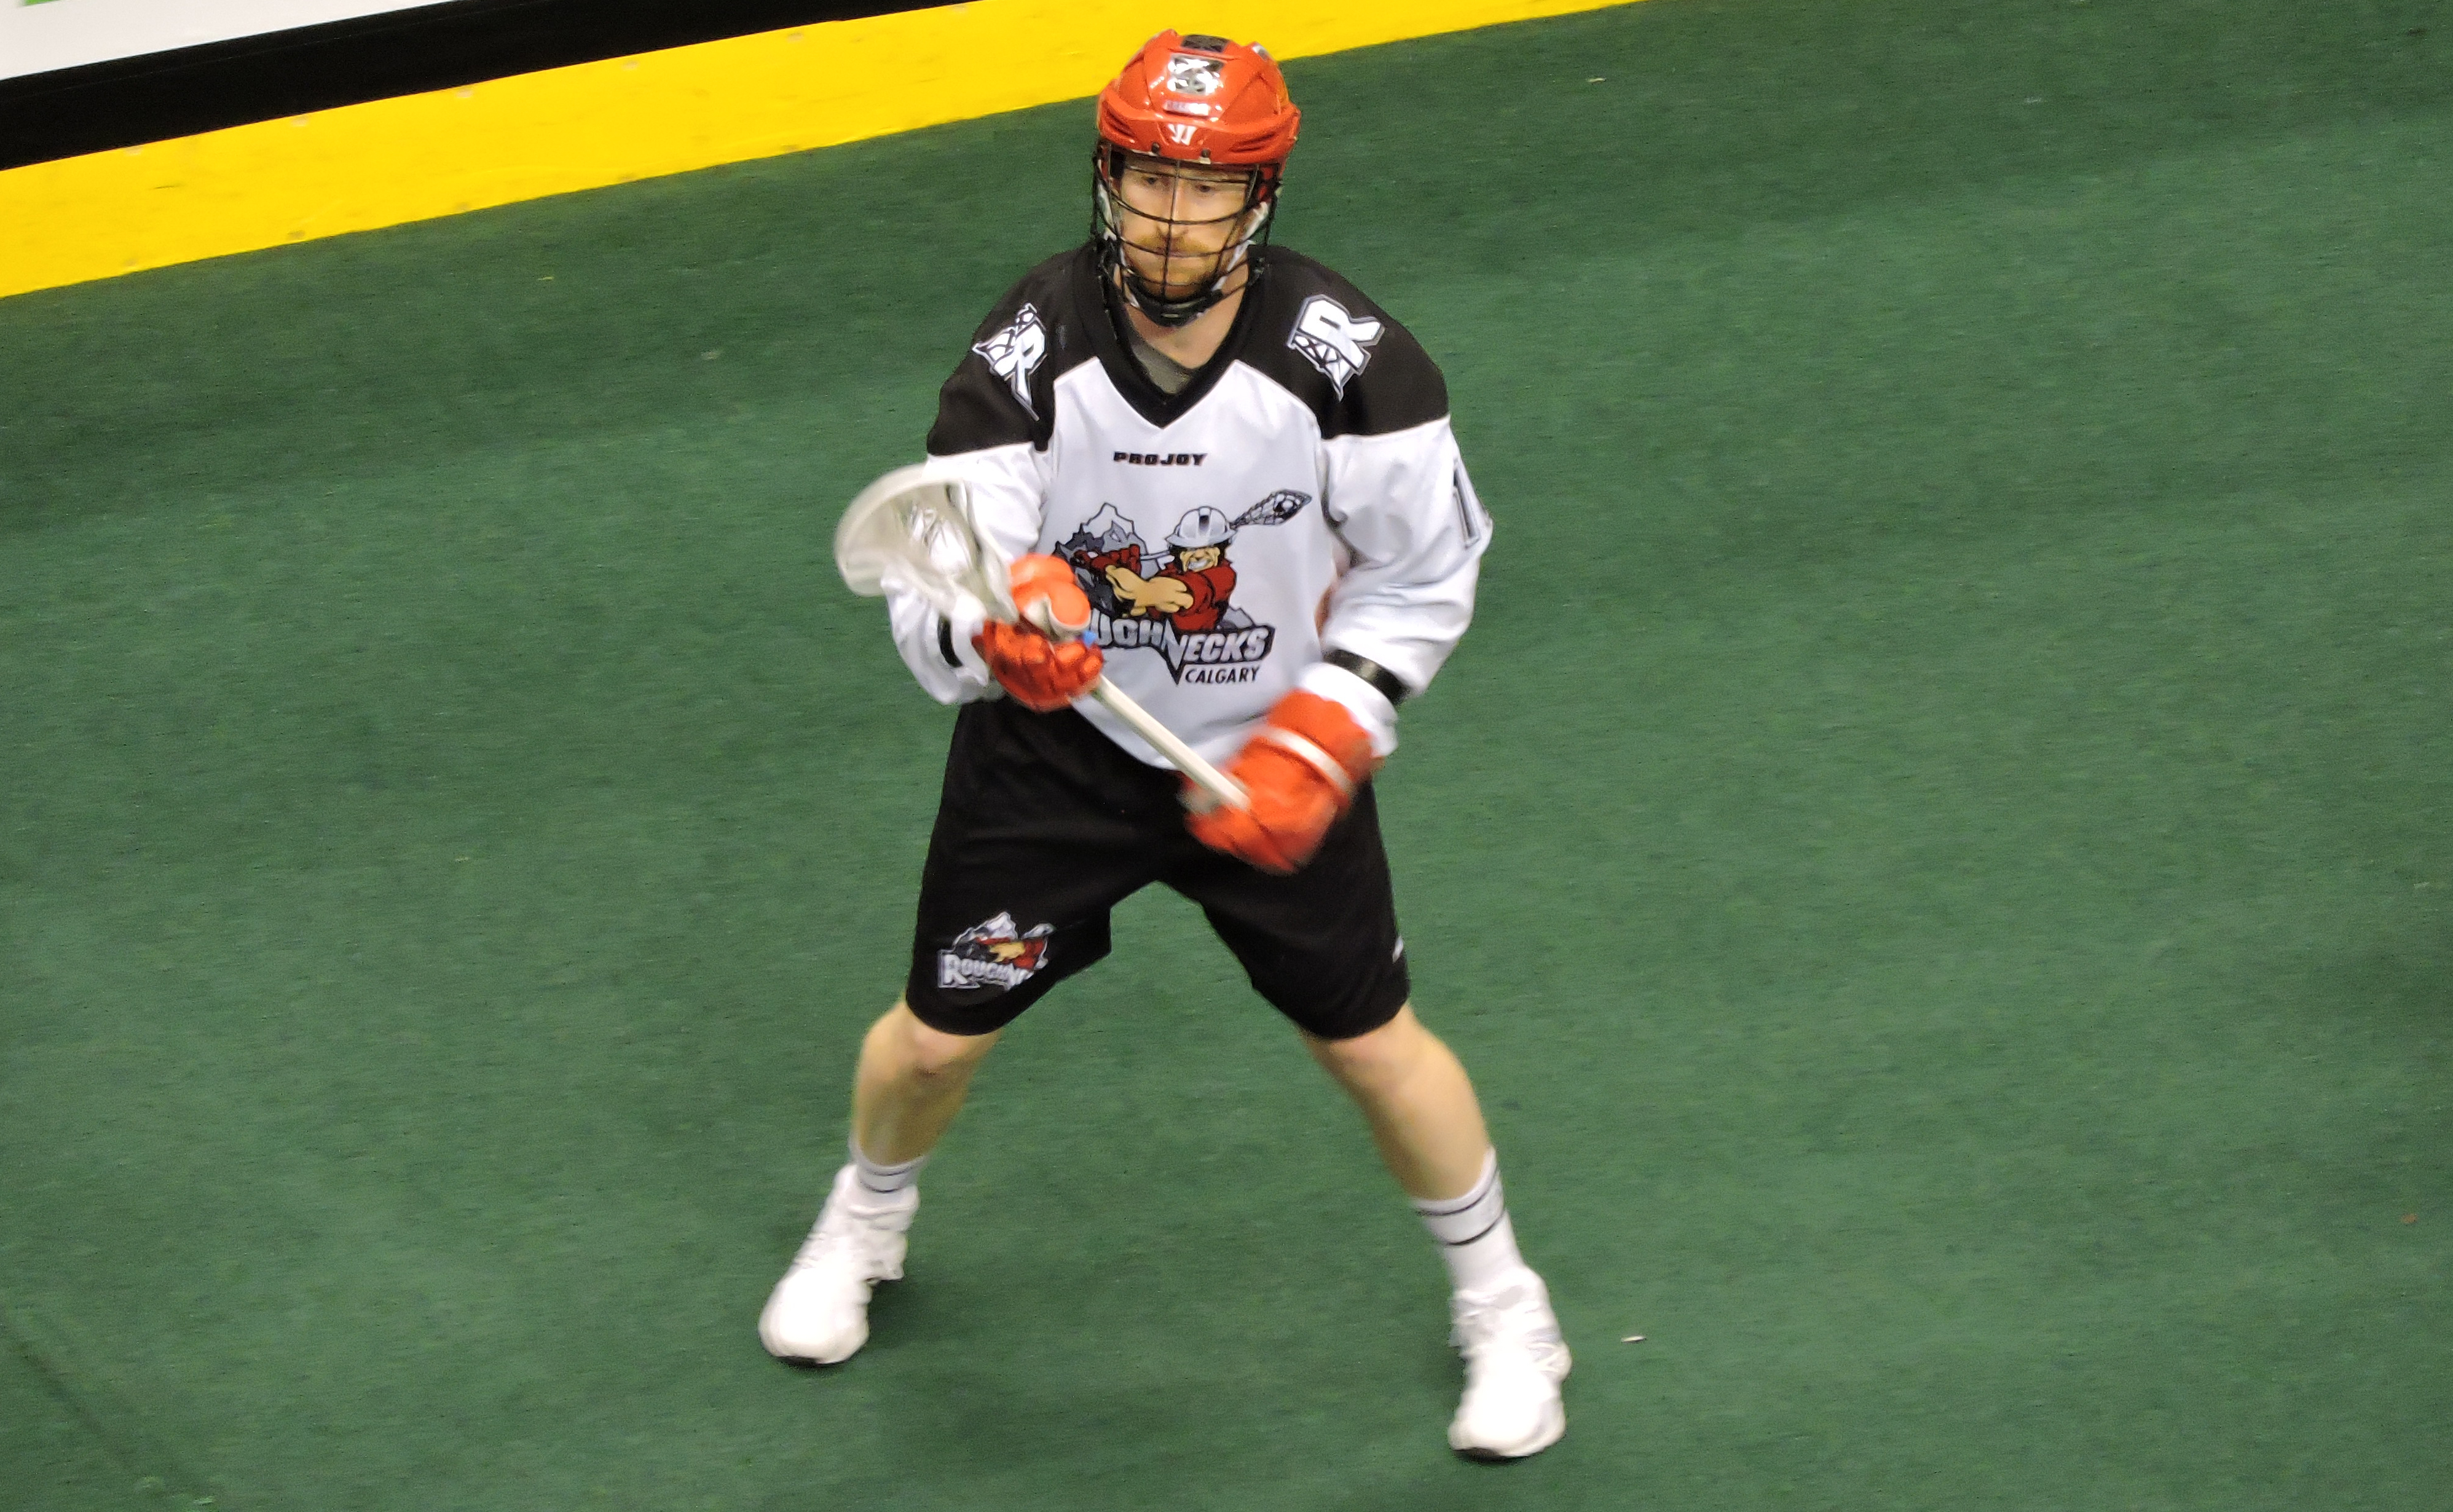 Curtis Dickson of the Calgary Roughnecks in action against the Toronto Rock on March 11, 2017 at the Air Canada Centre. (Photo credit: Anna Taylor)